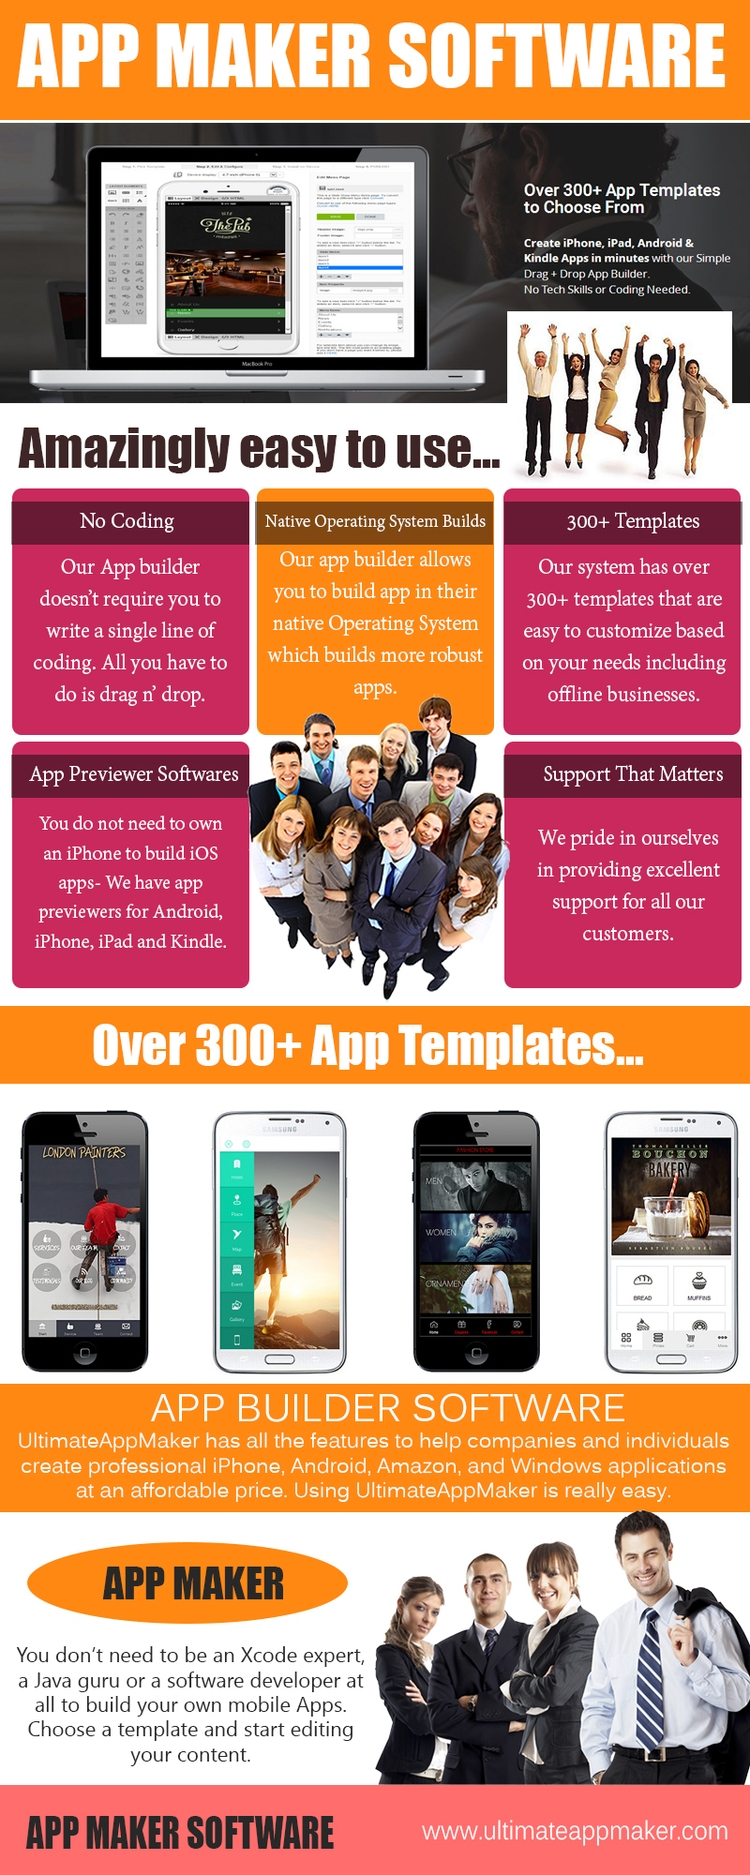 App Maker Software site increas - appbuildersoftware | ello